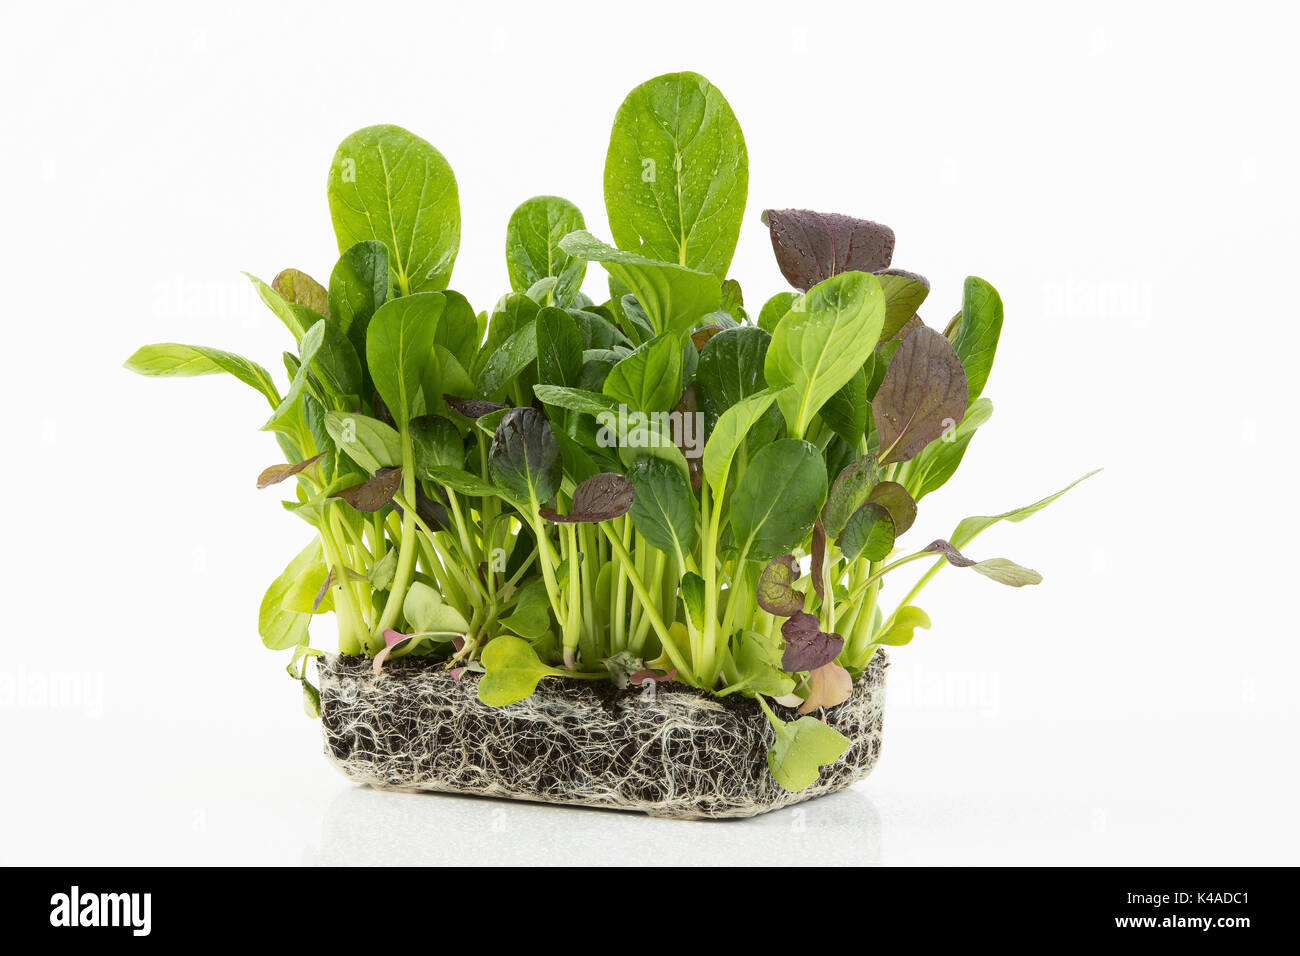 Superfood Japanese Spinach - Stock Image